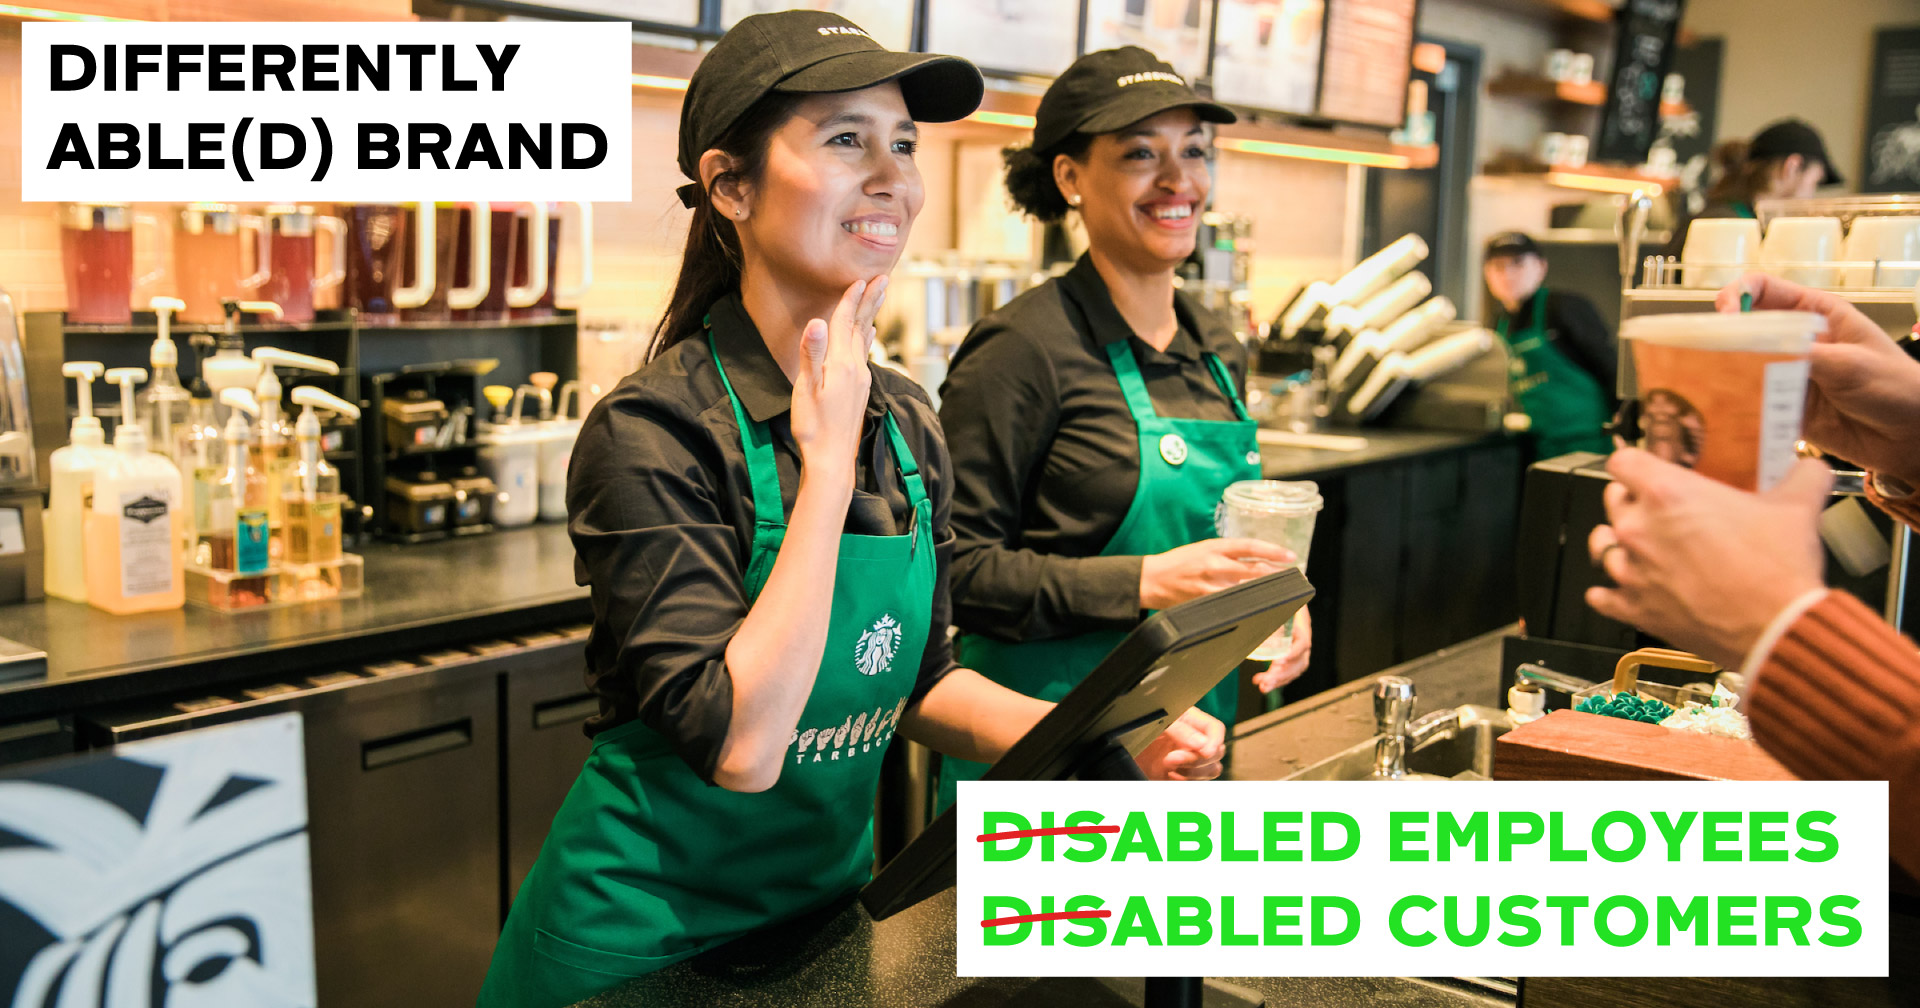 Is Your Brand Differently Abled?